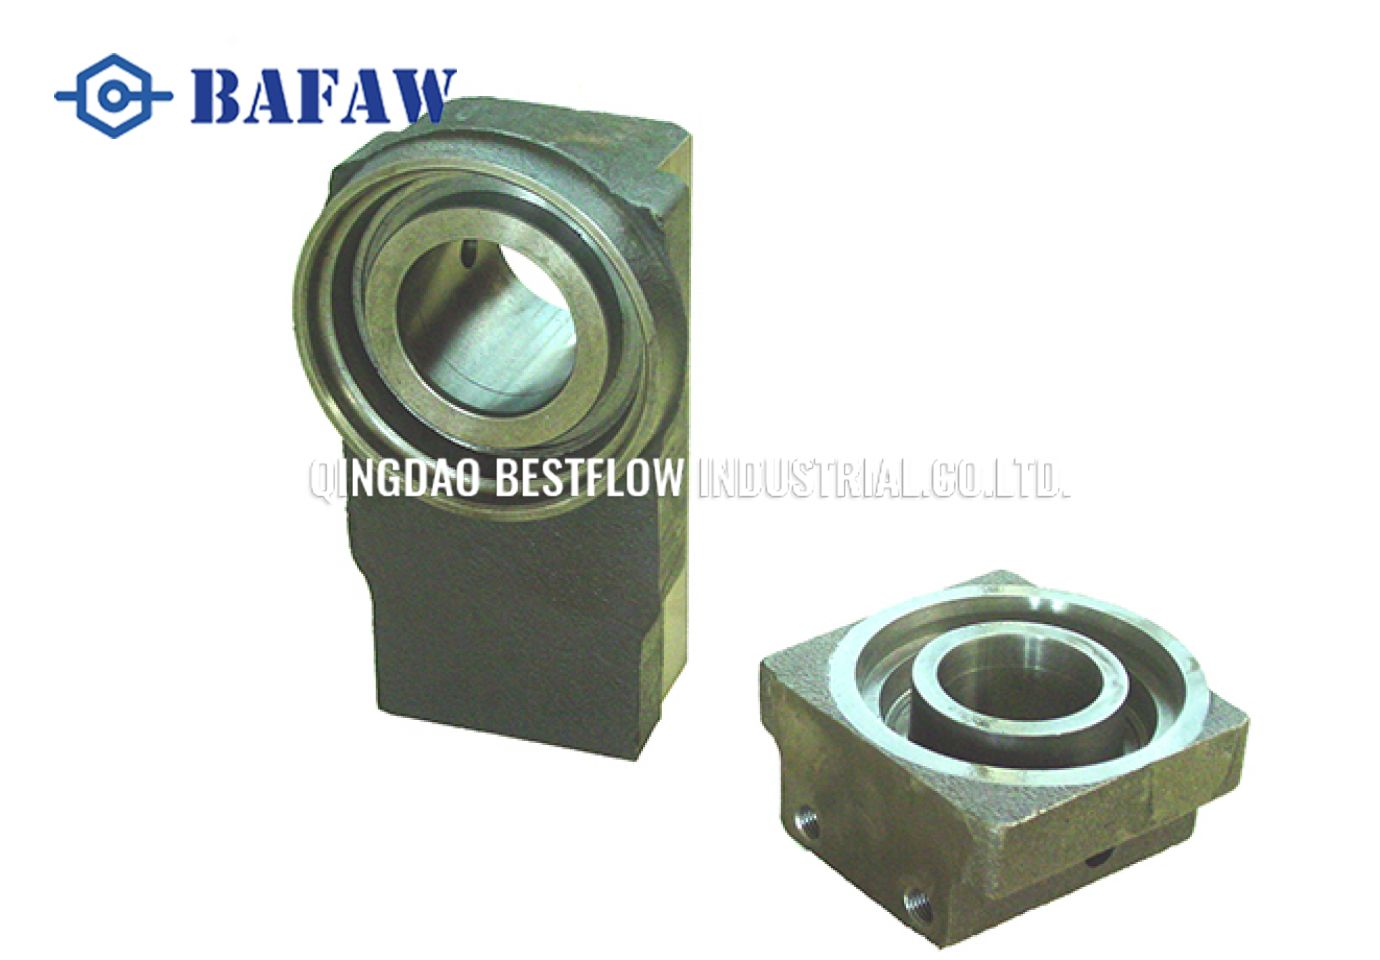 Electric Iron Parts|Casting Iron|Resin Sand Gg25 Cast Iron